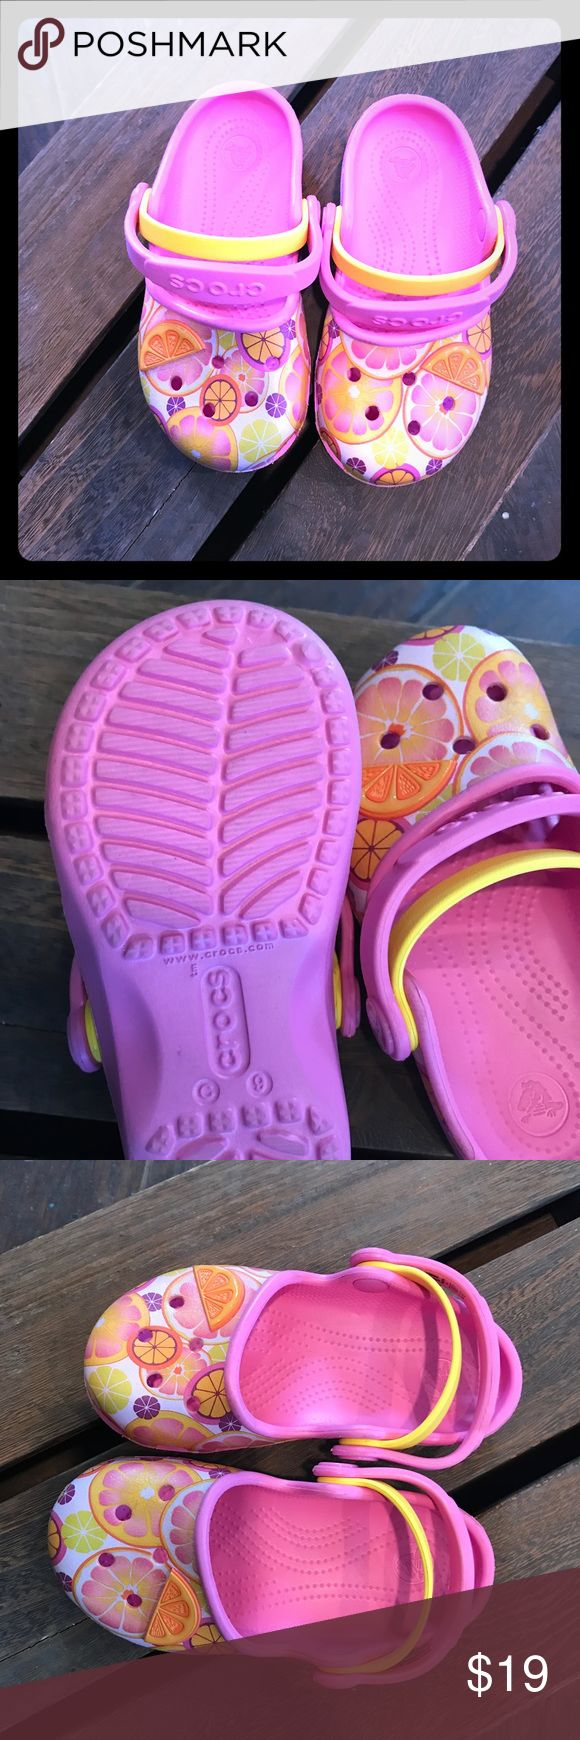 Girls crocks Cute toddler girl shoes, summer colors, new without box, never worn CROCS Shoes Water Shoes